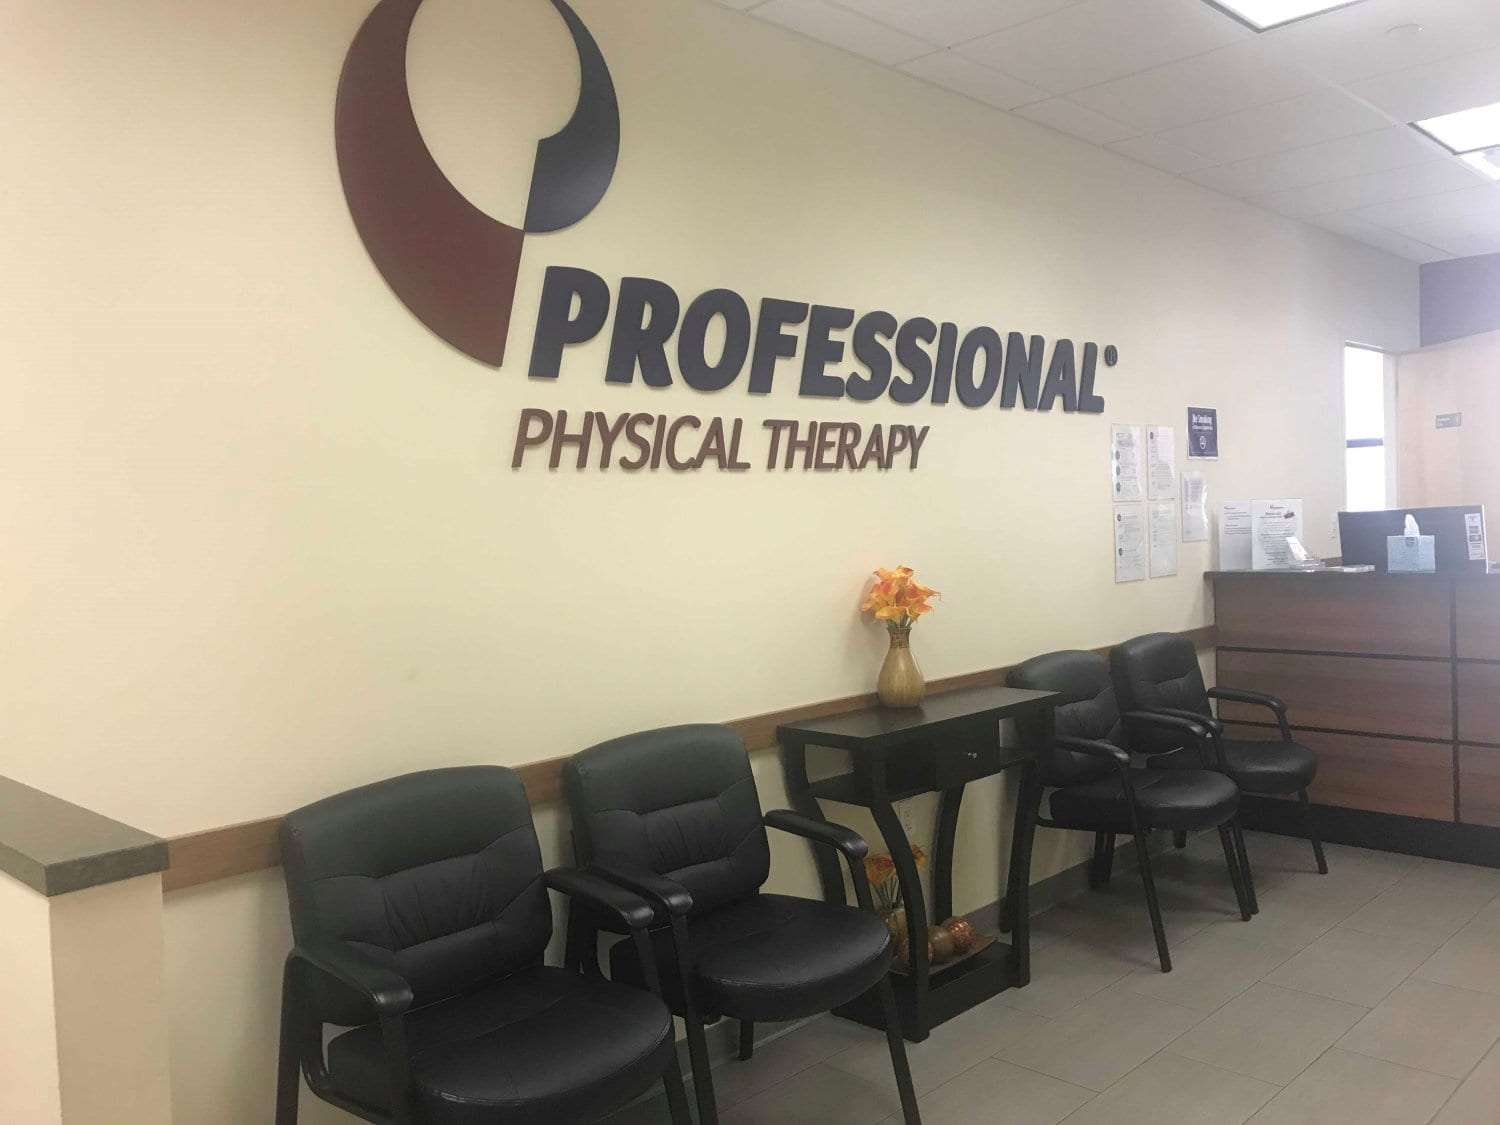 Here is an image of the waiting area in our physical therapy clinic in East Murray Hill, Manhattan, New York.